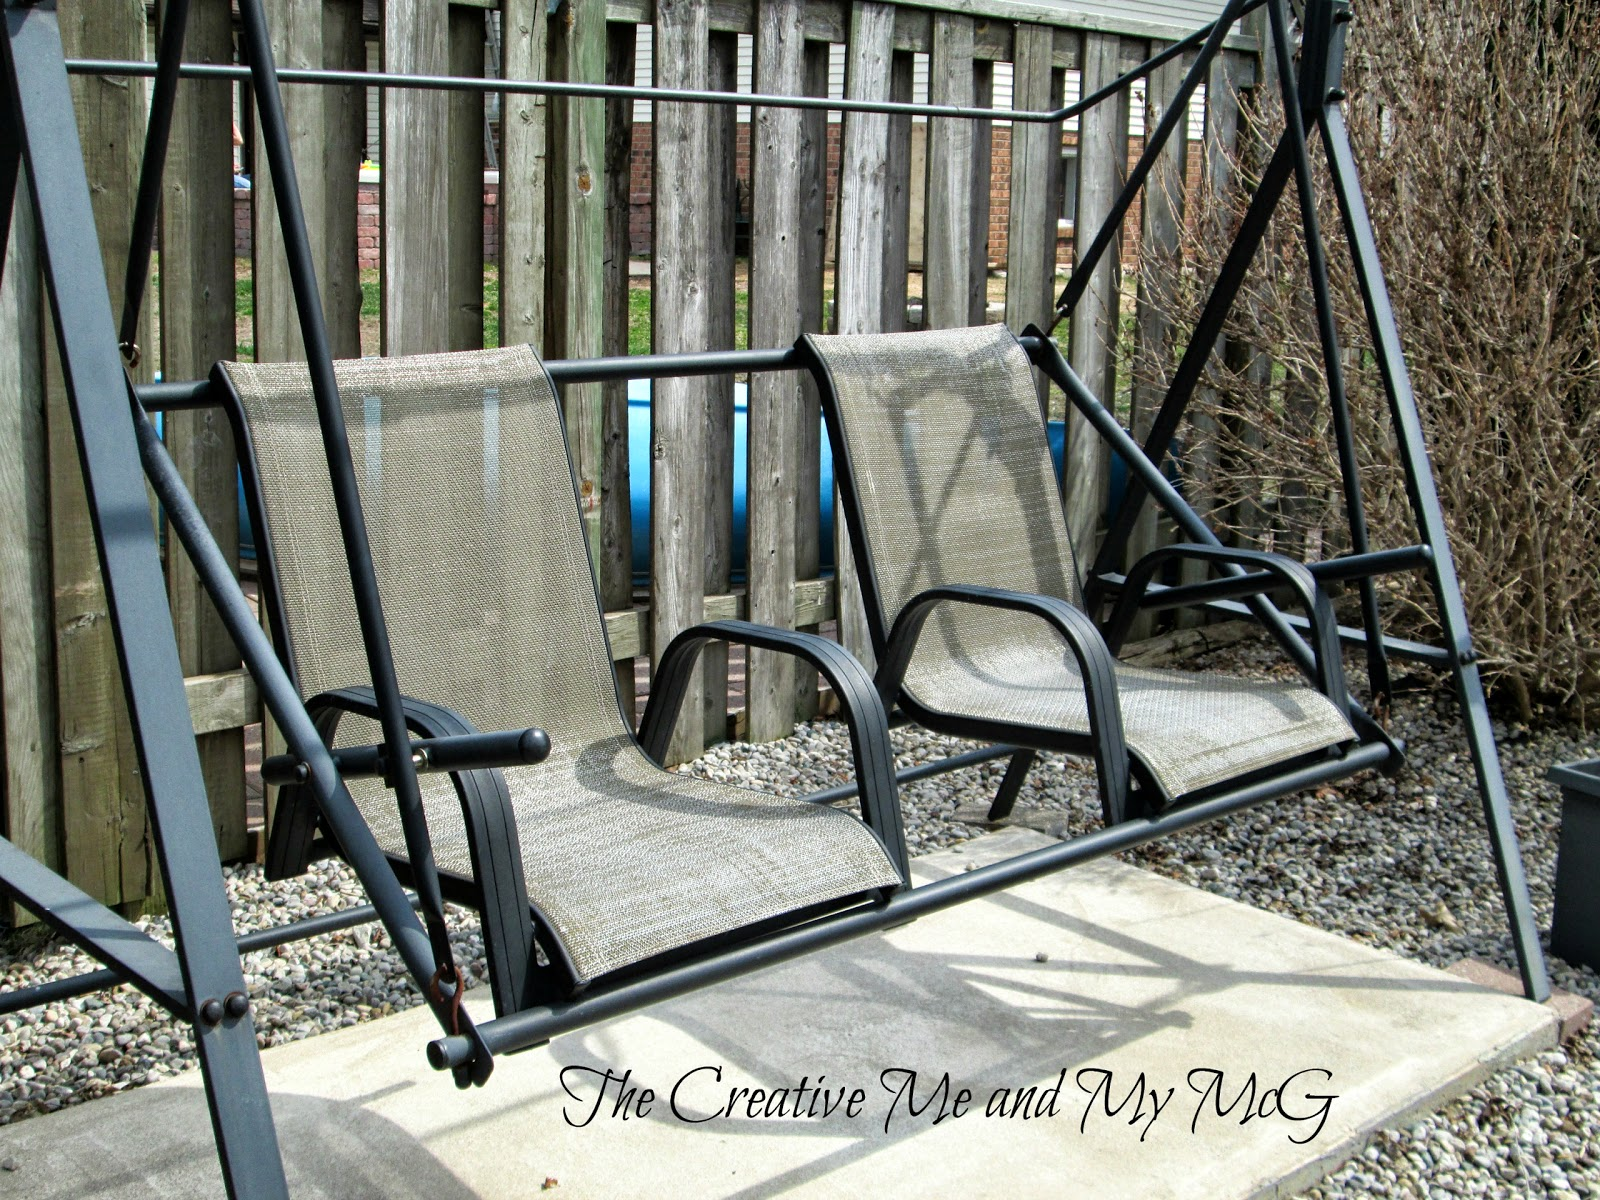 Swing Chair Seat Small Plastic Kid Chairs The Creative Me And My Mcg Upcycling Patio To A